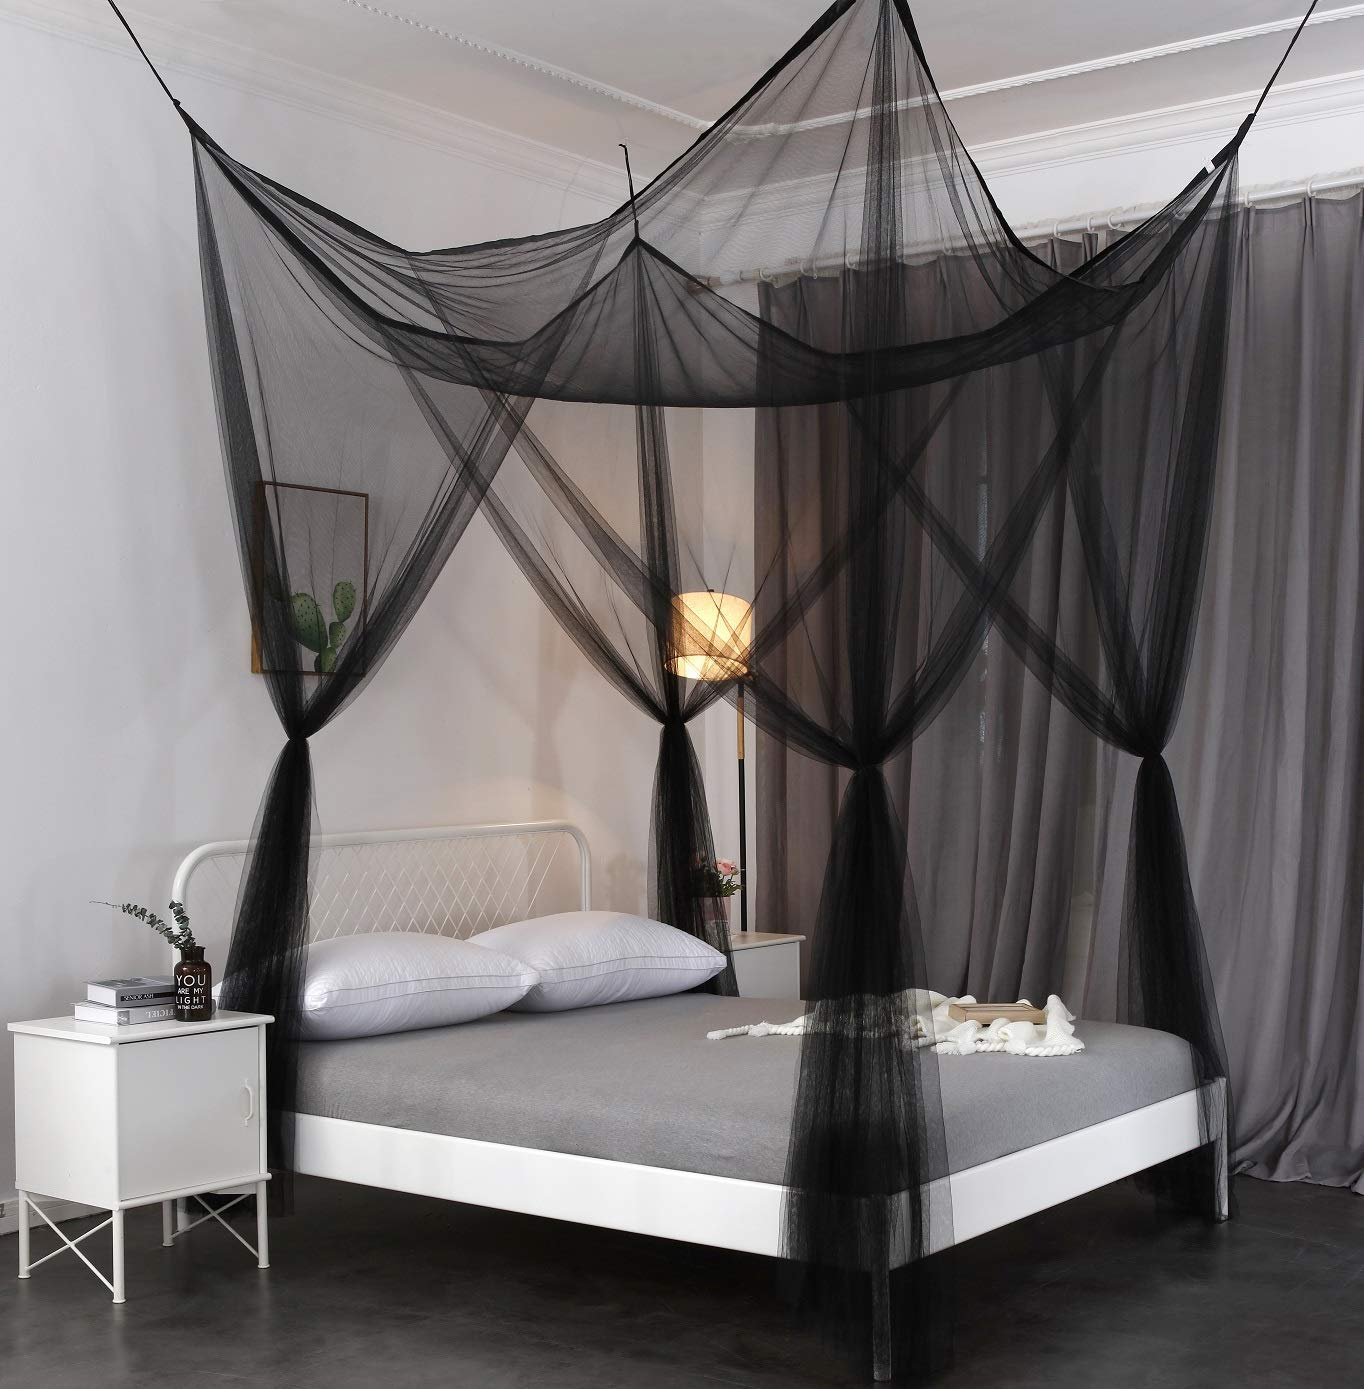 - OctoRose 4 Poster Mosquito NET, Four Post Bed Canopy Elegant Screen Ne